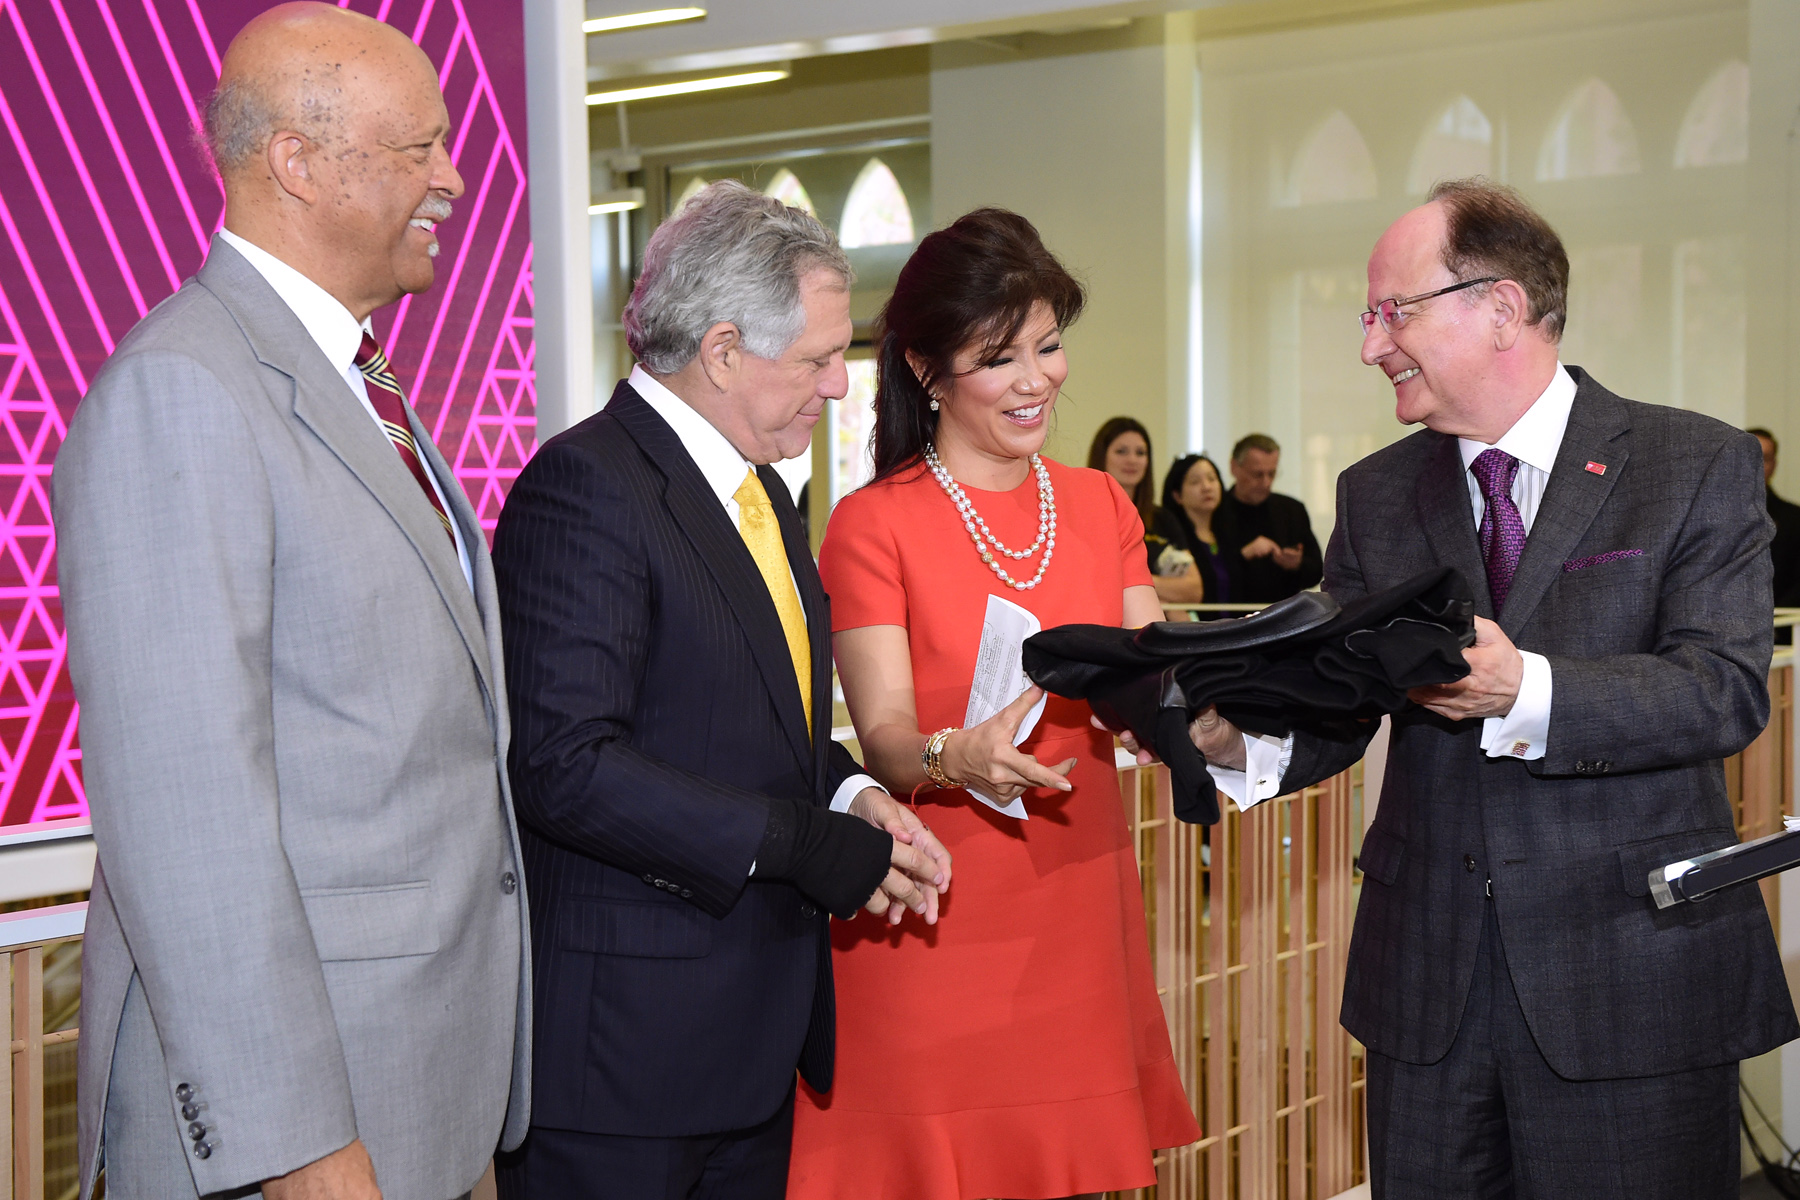 USC Annenberg School for Communication and Journalism naming event for the Julie Chen/Leslie Moonves